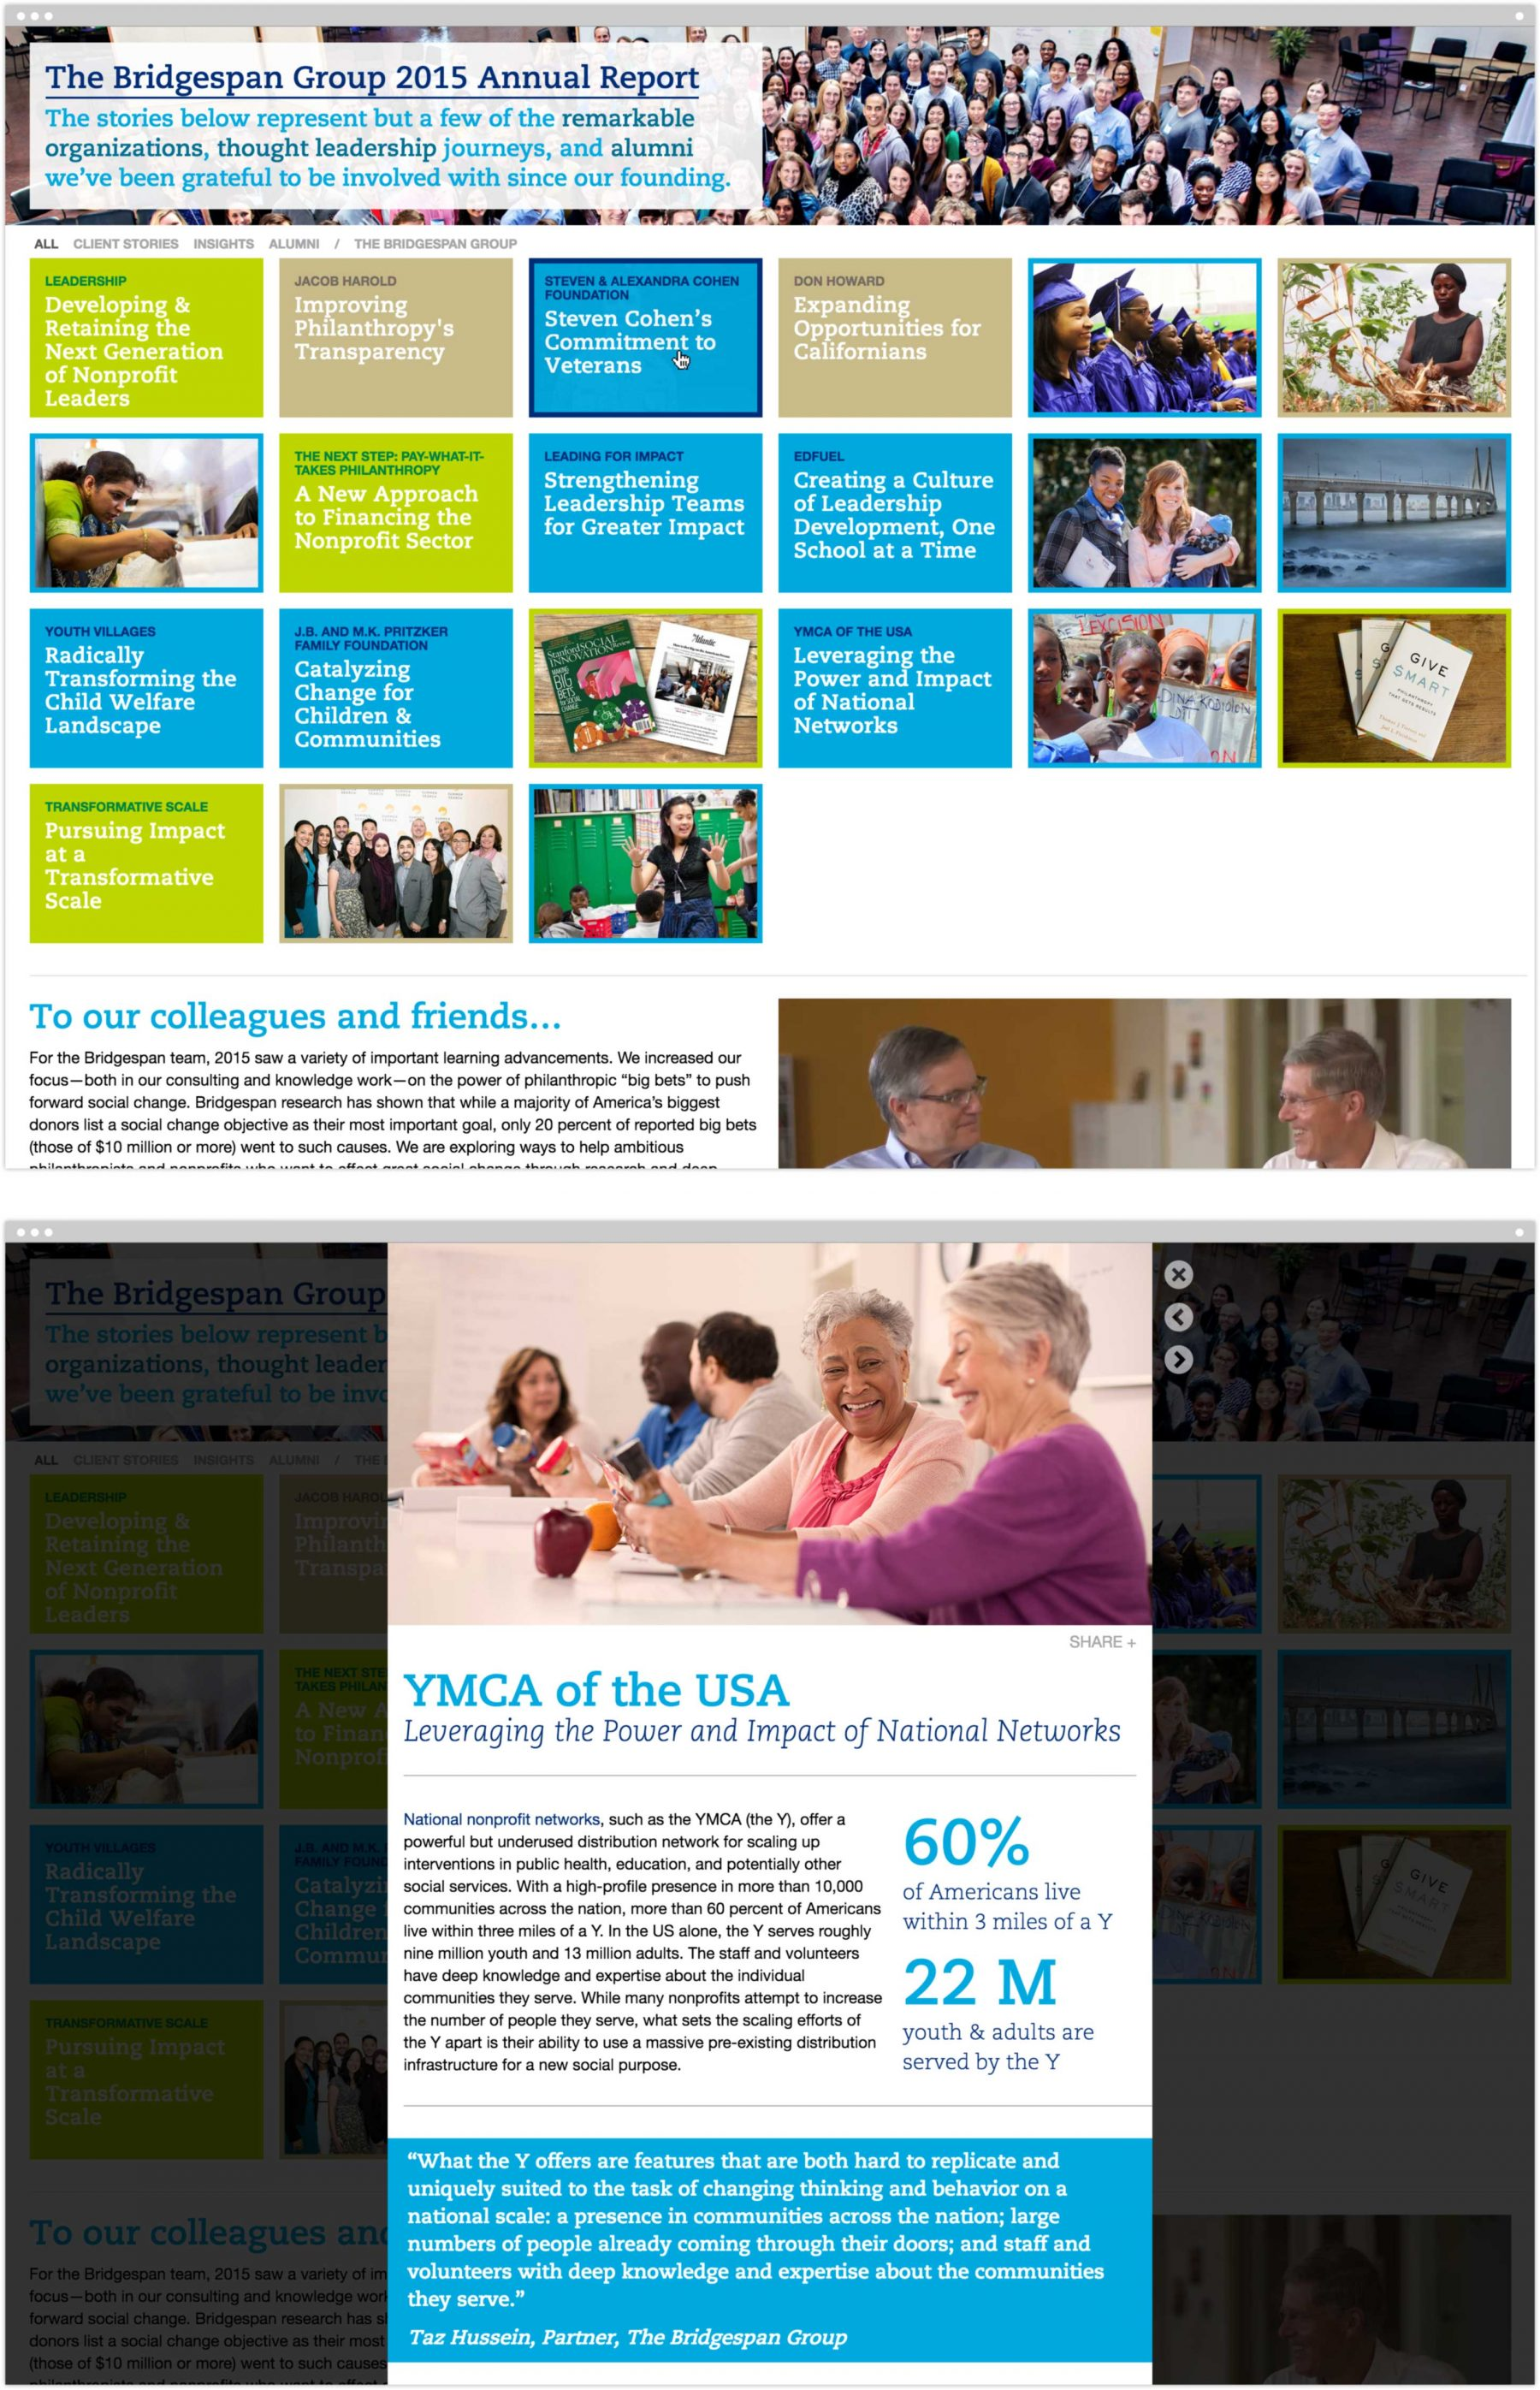 Bridgespan 2015 Annual Report homepage and lightbox